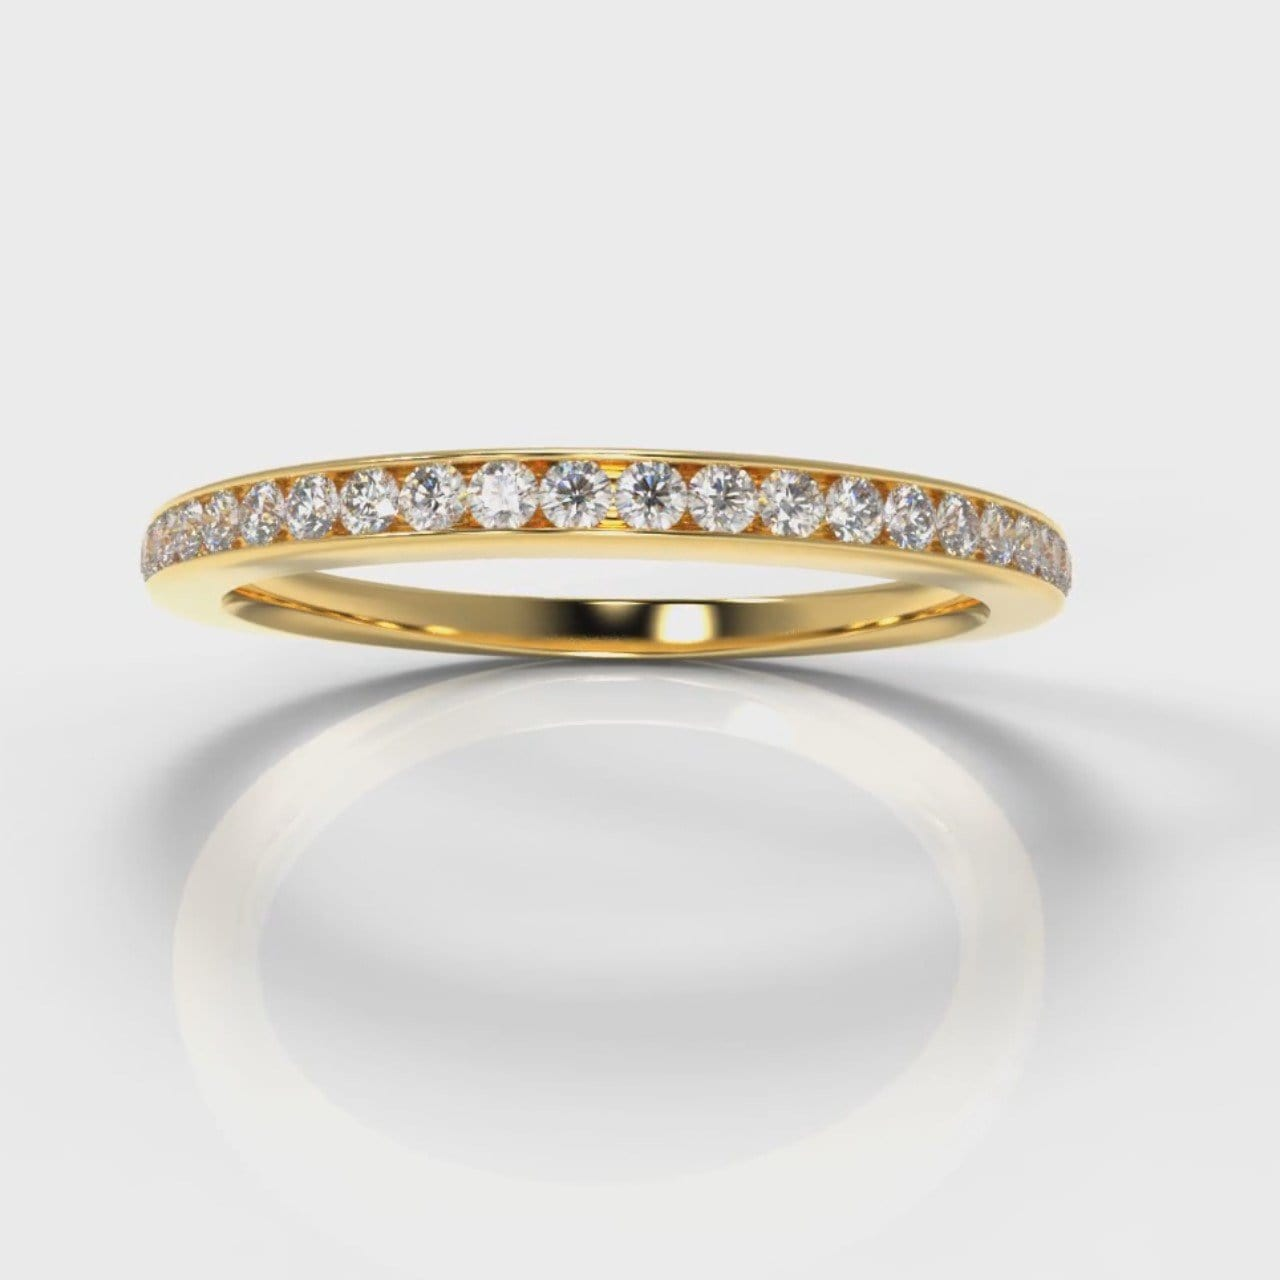 Petite Channel Set Diamond Wedding Ring - Yellow Gold